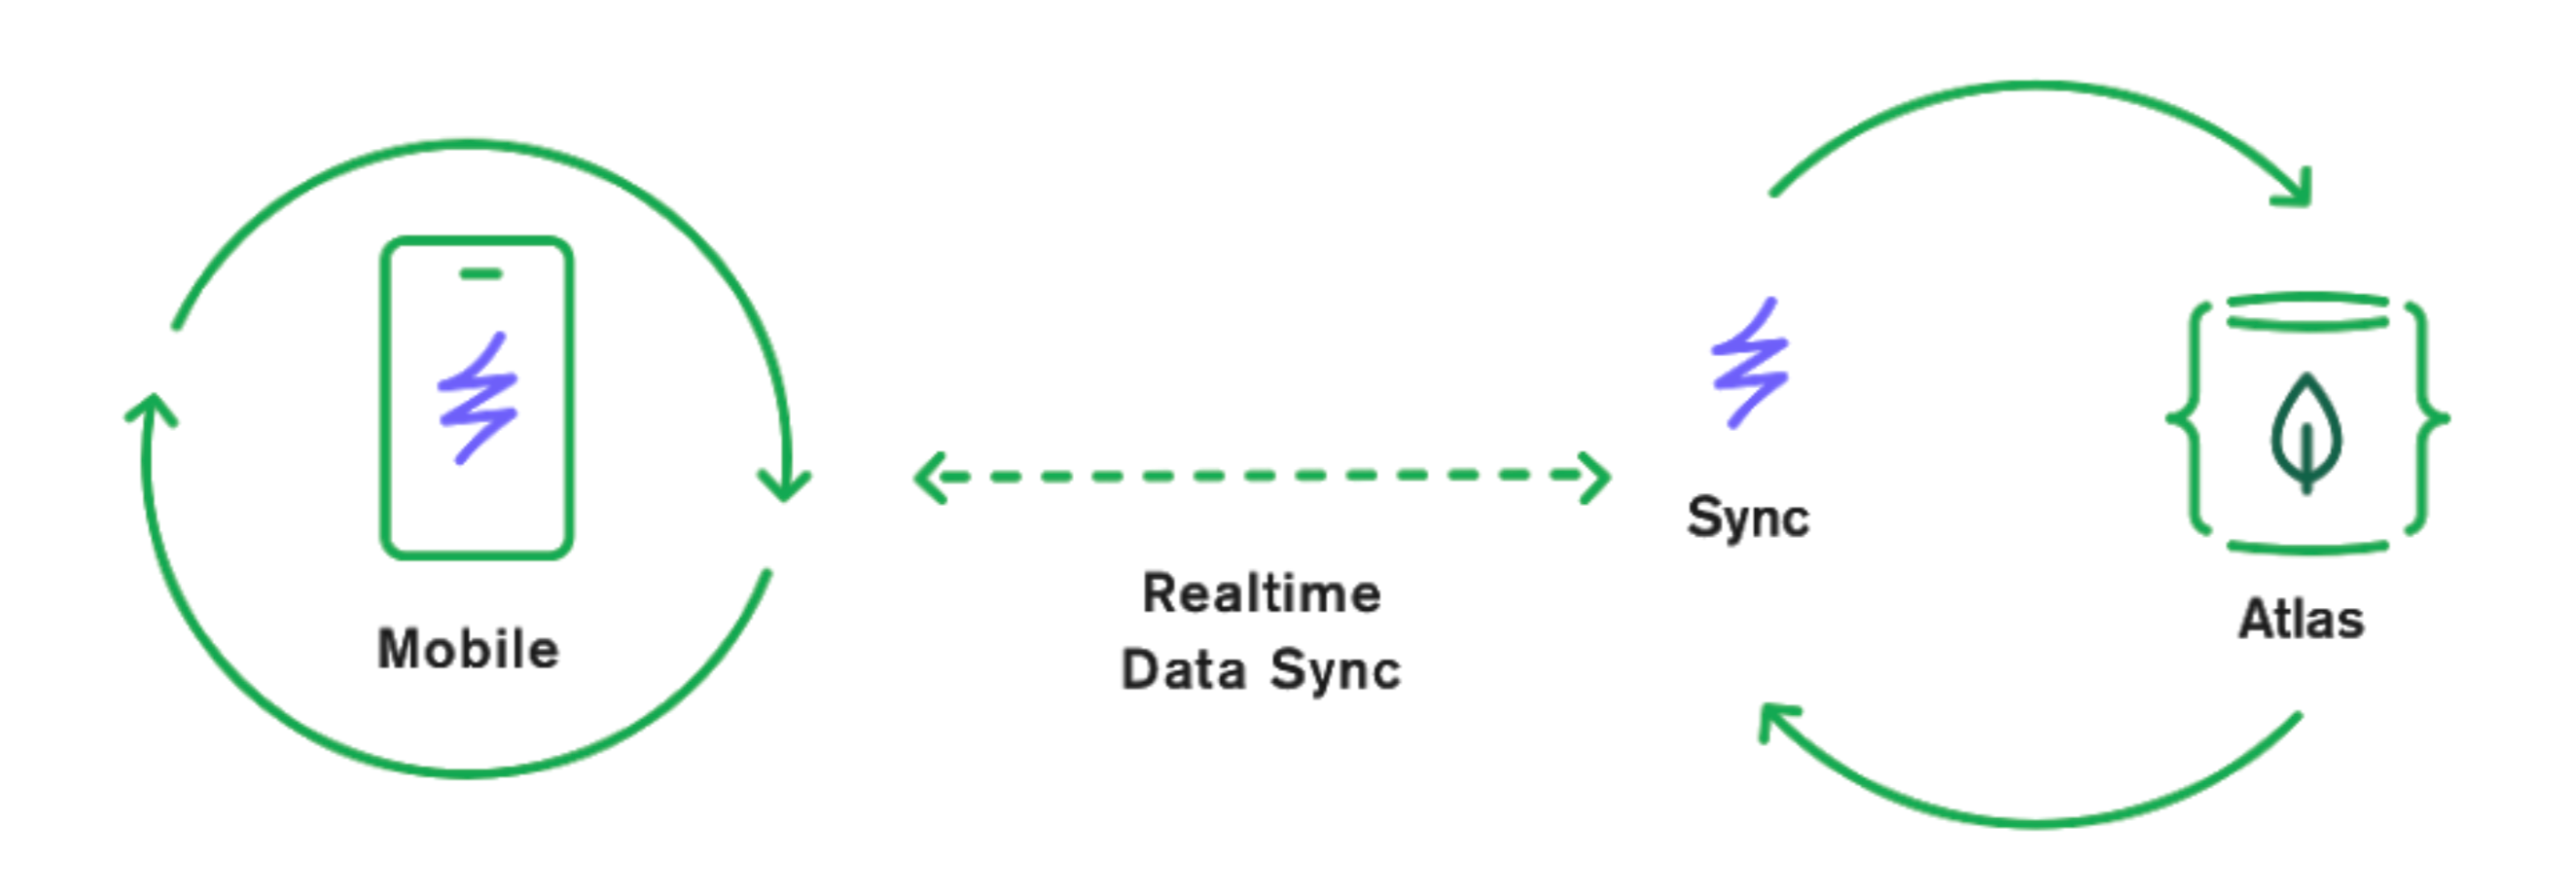 Diagram showing how the Mobile App syncs with the Atlas database using Realm Sync